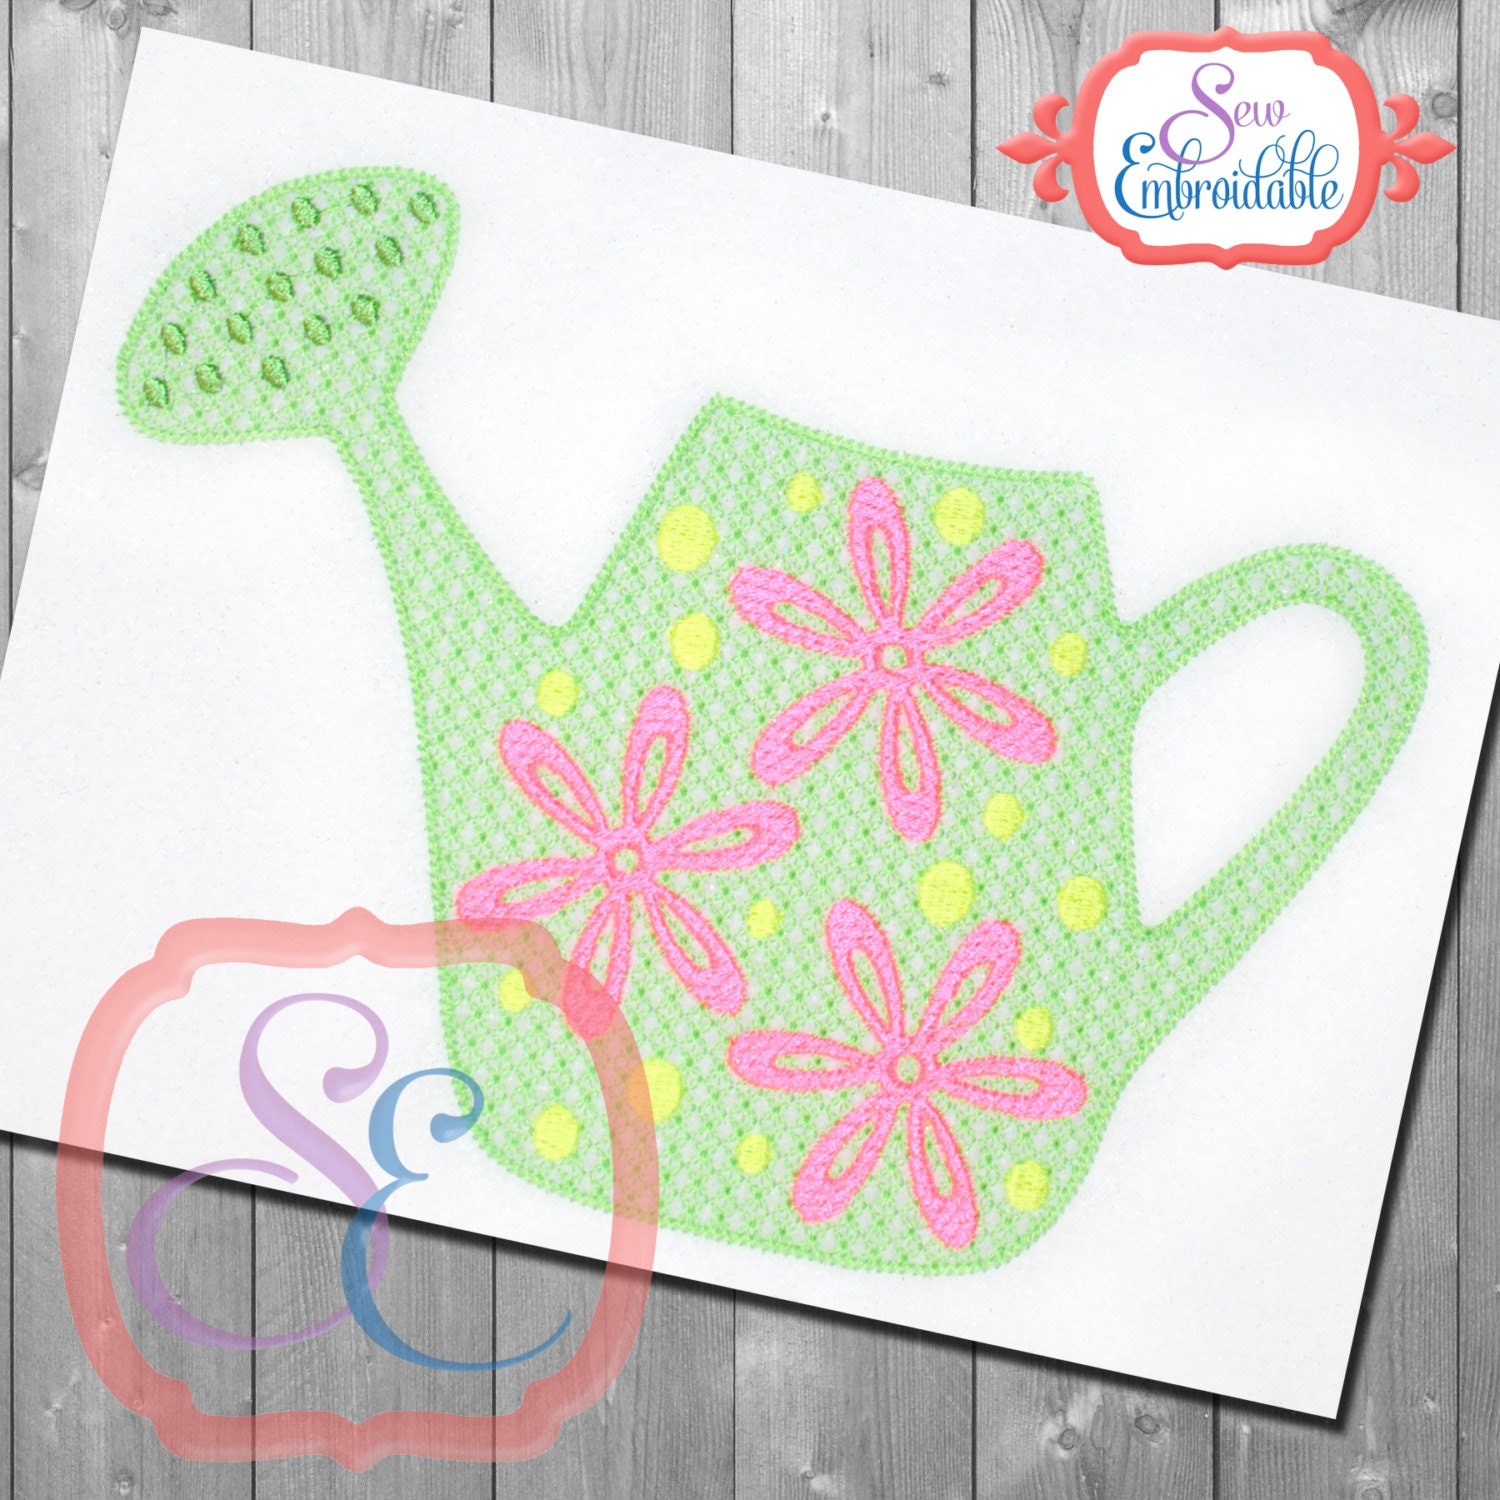 Motif watering can design for machine embroidery instant